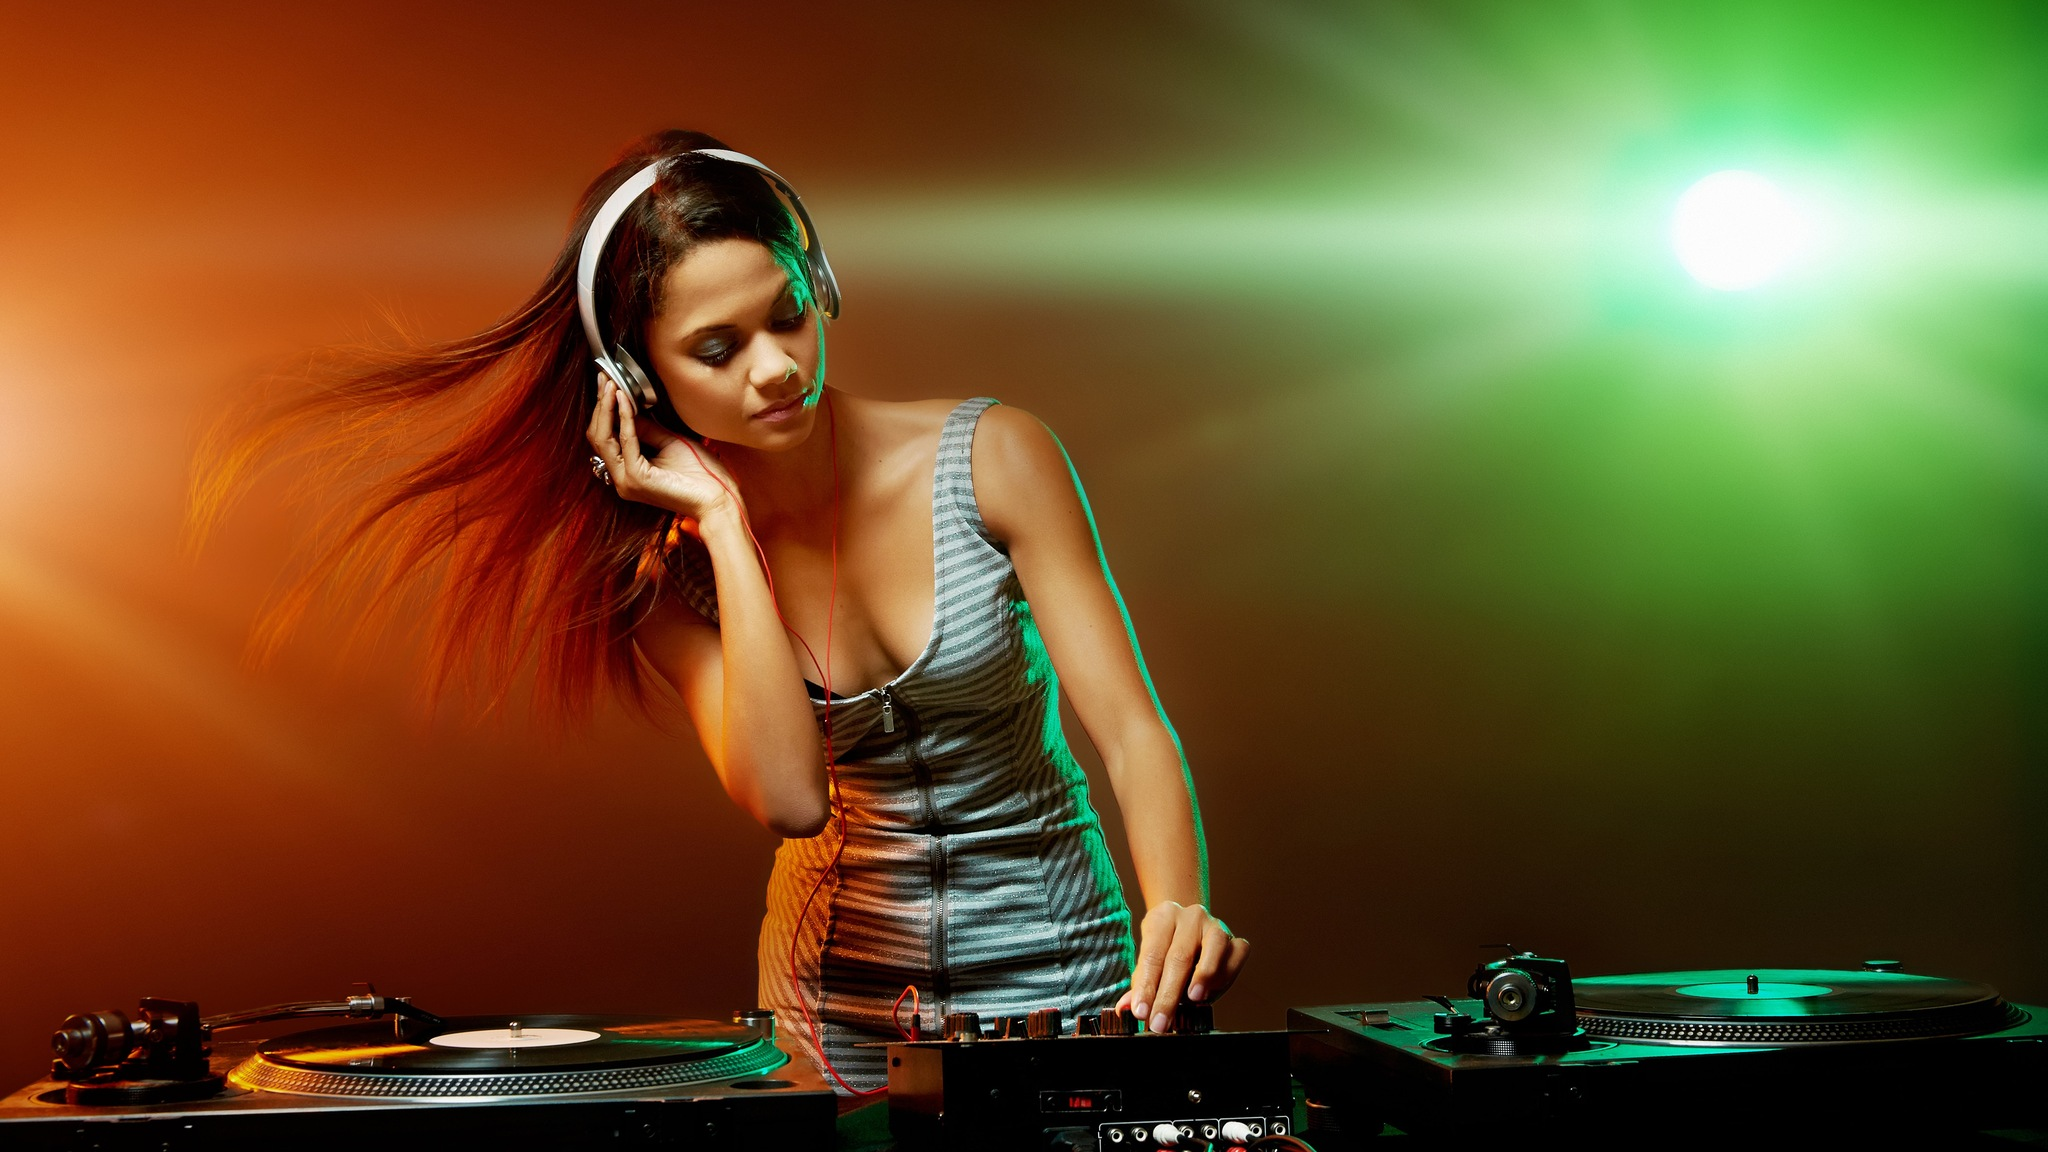 Party Dj Girl Image